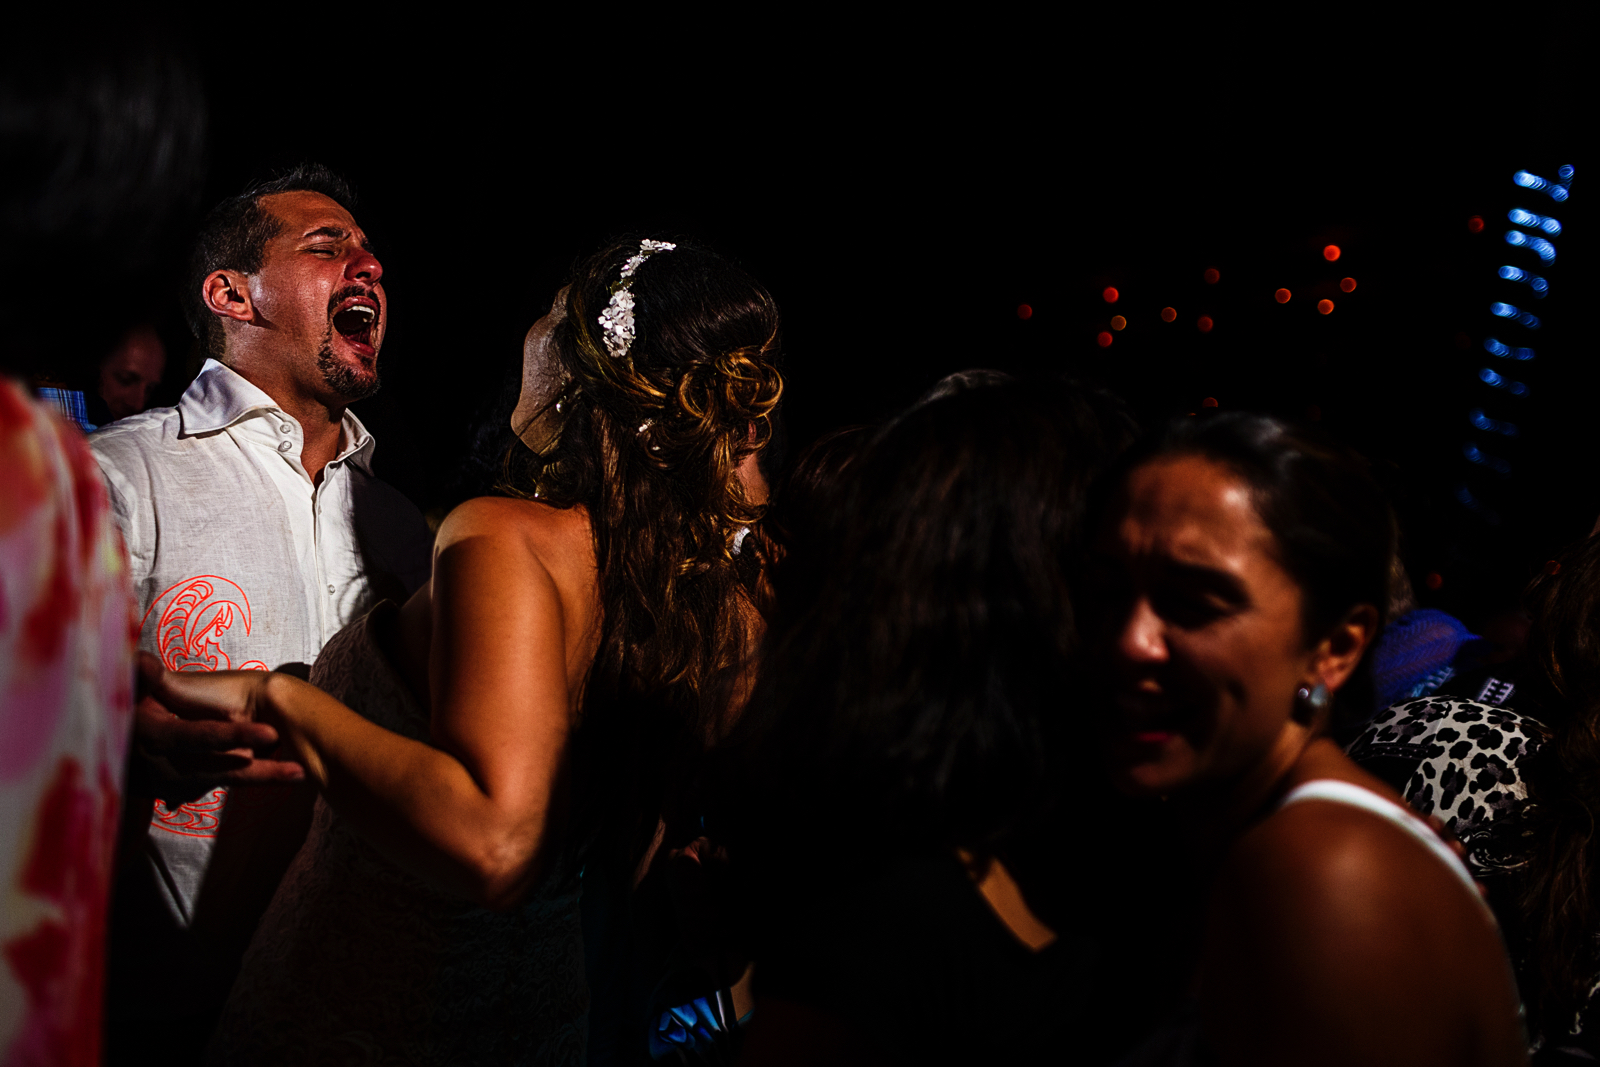 Groom singing while dancing with the bride in the crowd